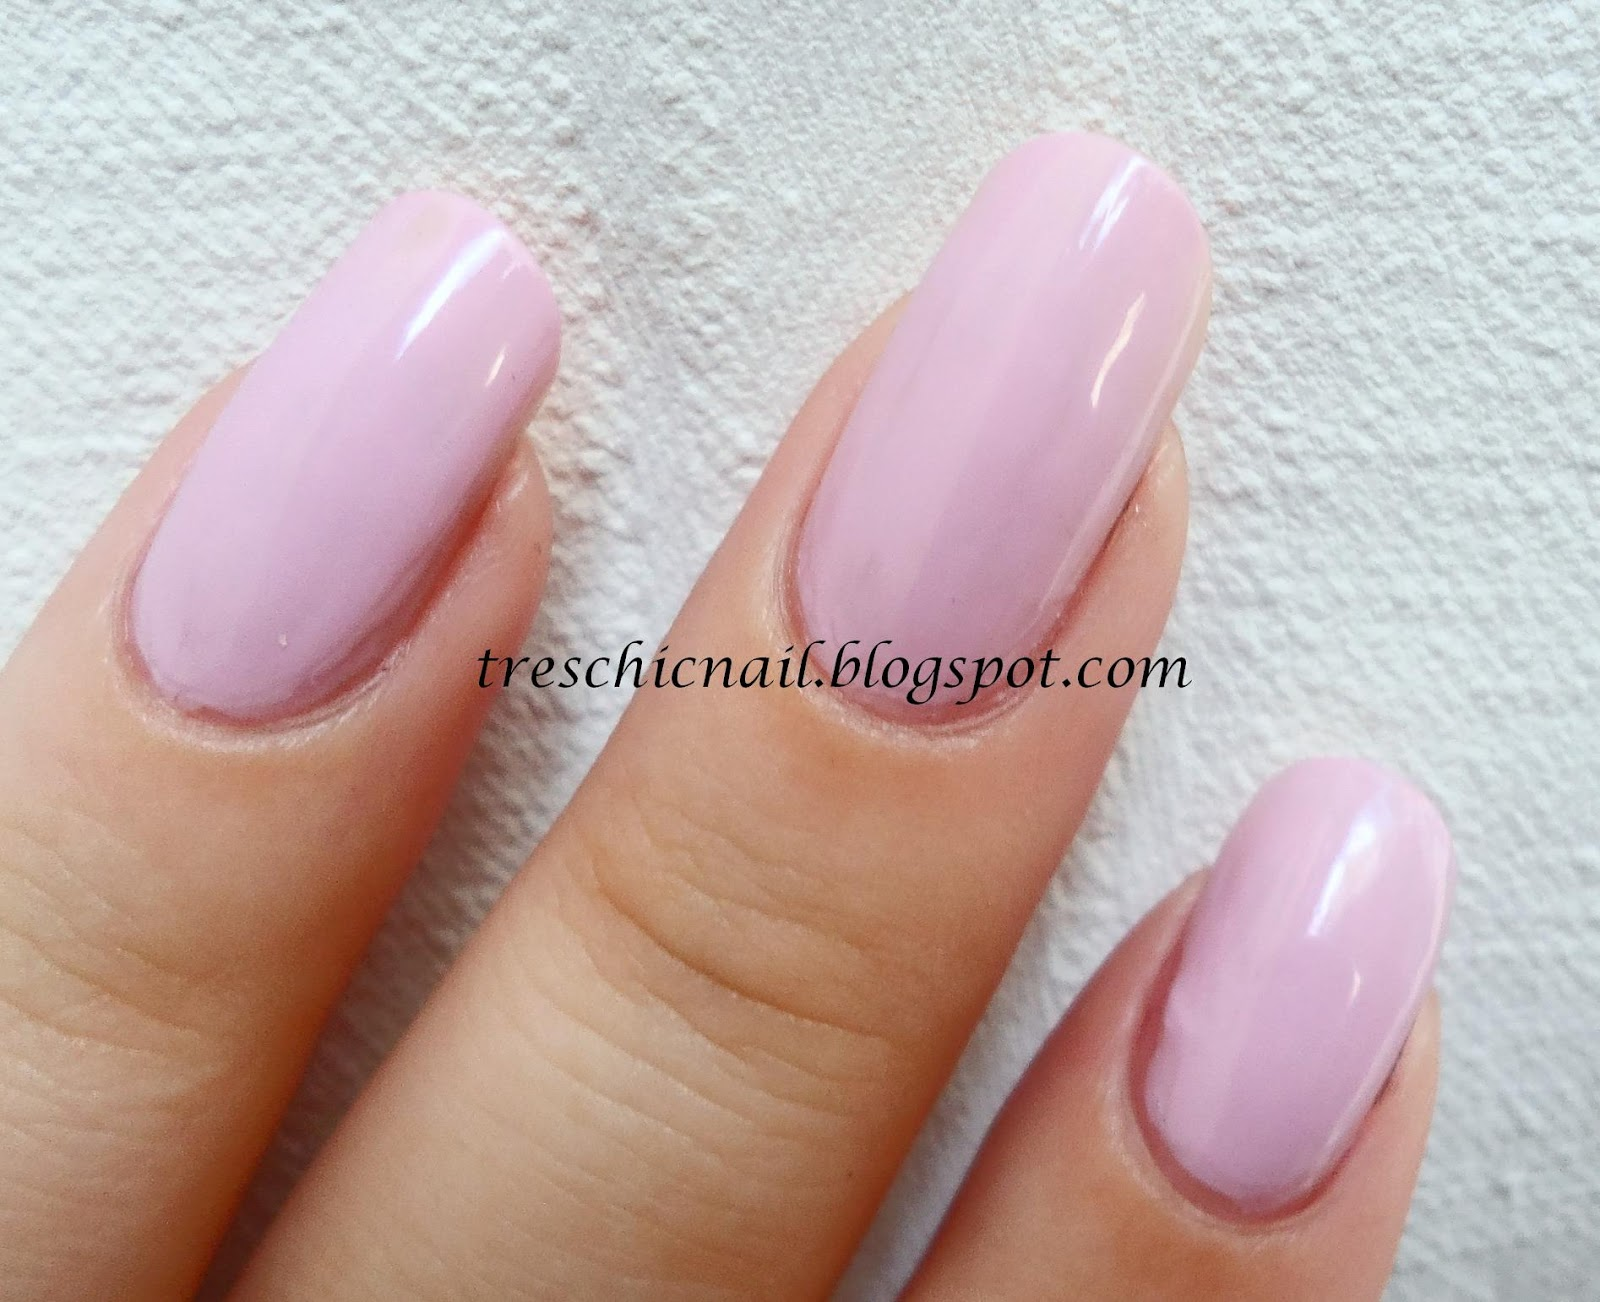 Trs Chic Nail: My Newly Rounded Nails